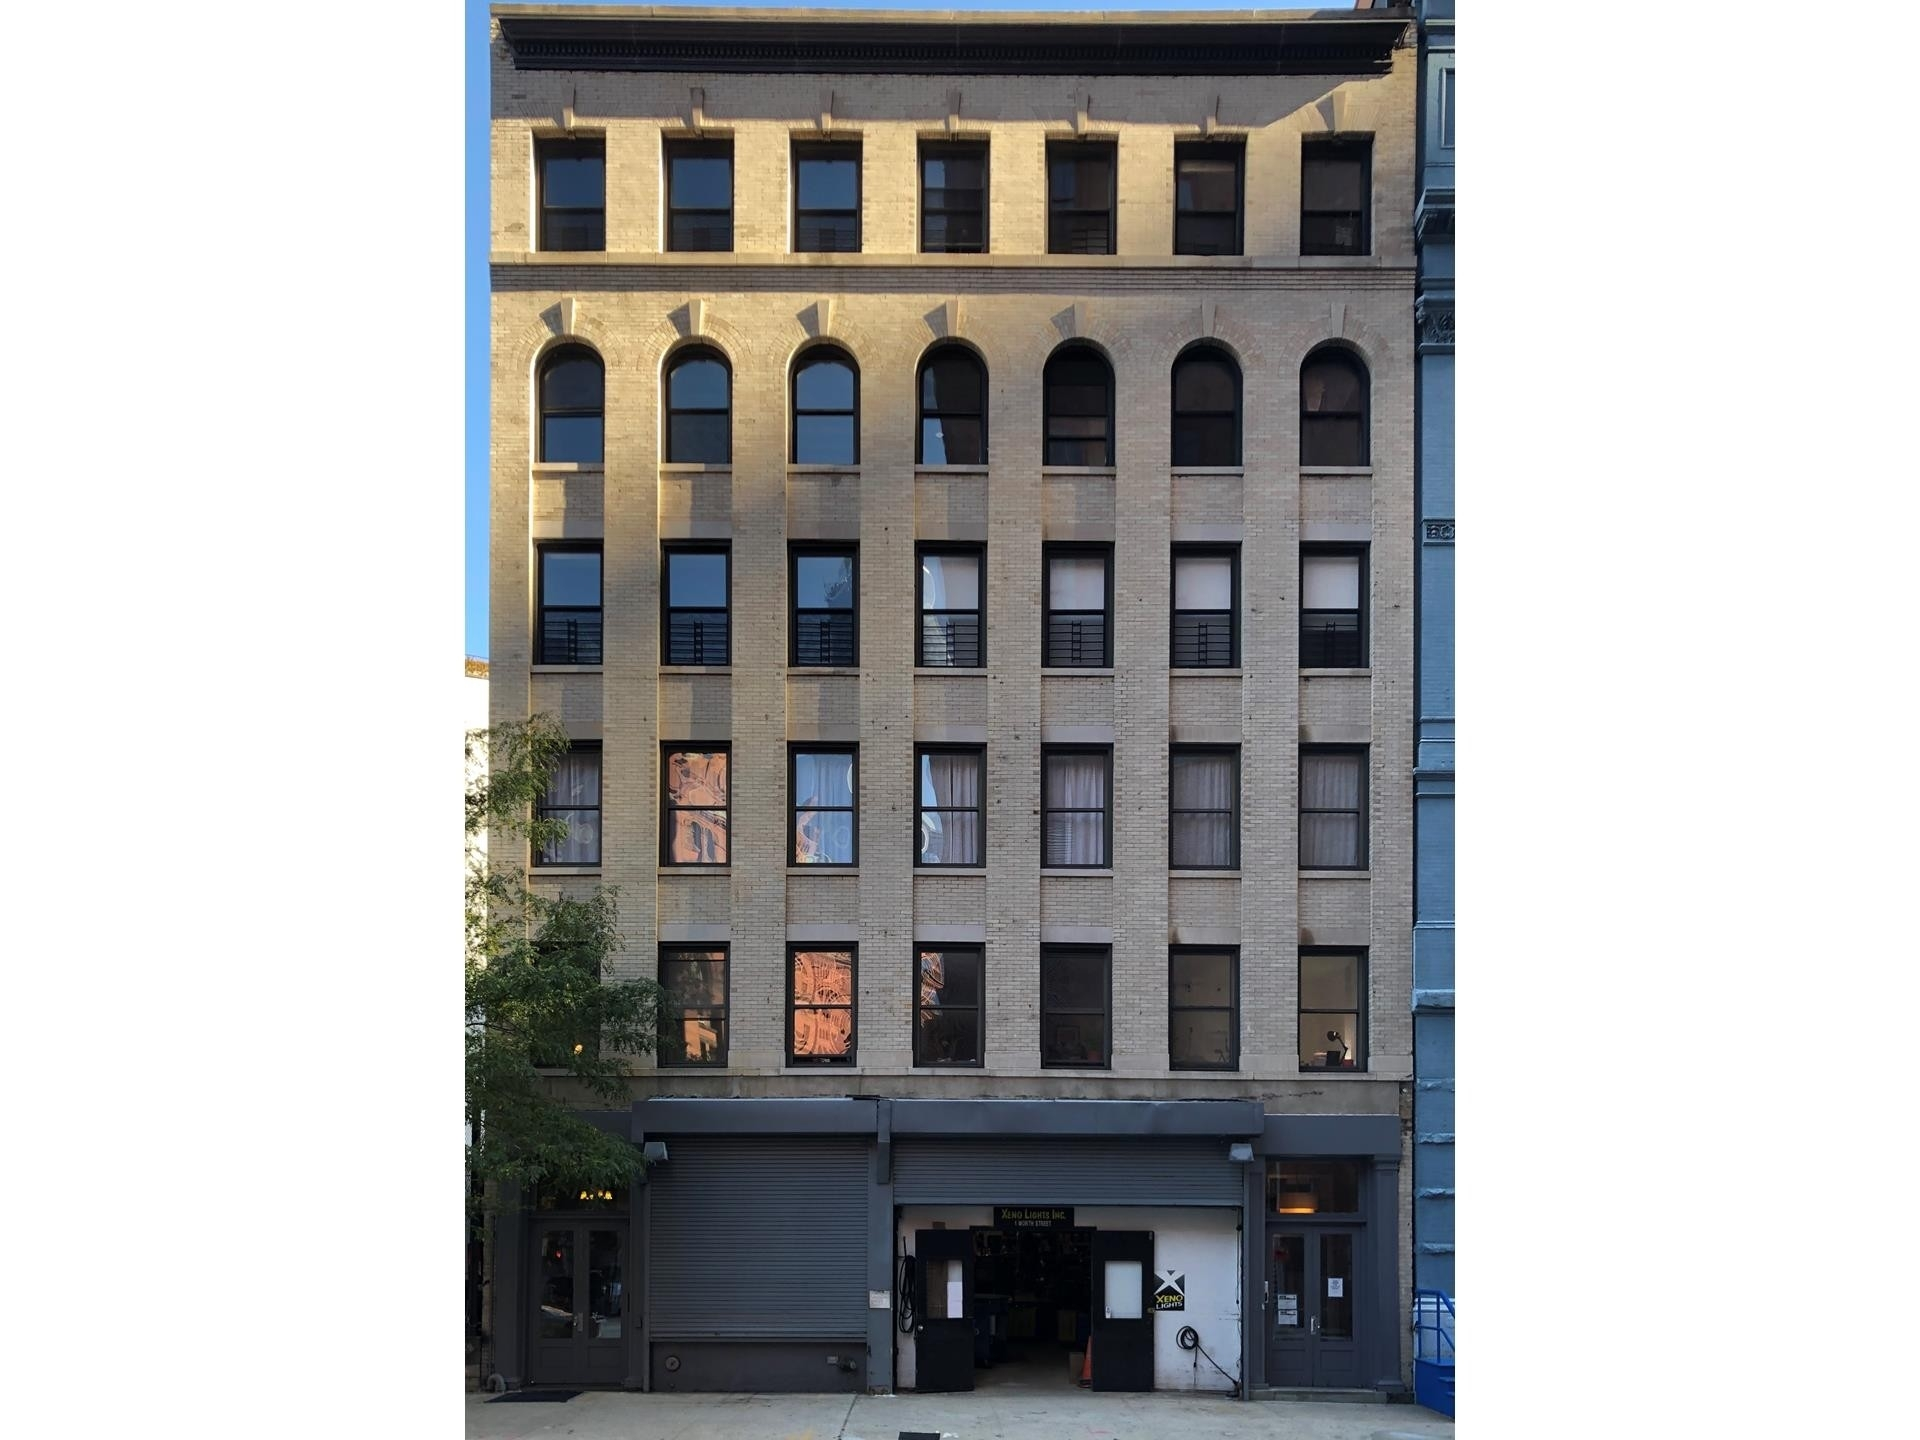 Commercial for Sale at 1 Worth St, COMM/2F TriBeCa, New York, NY 10013